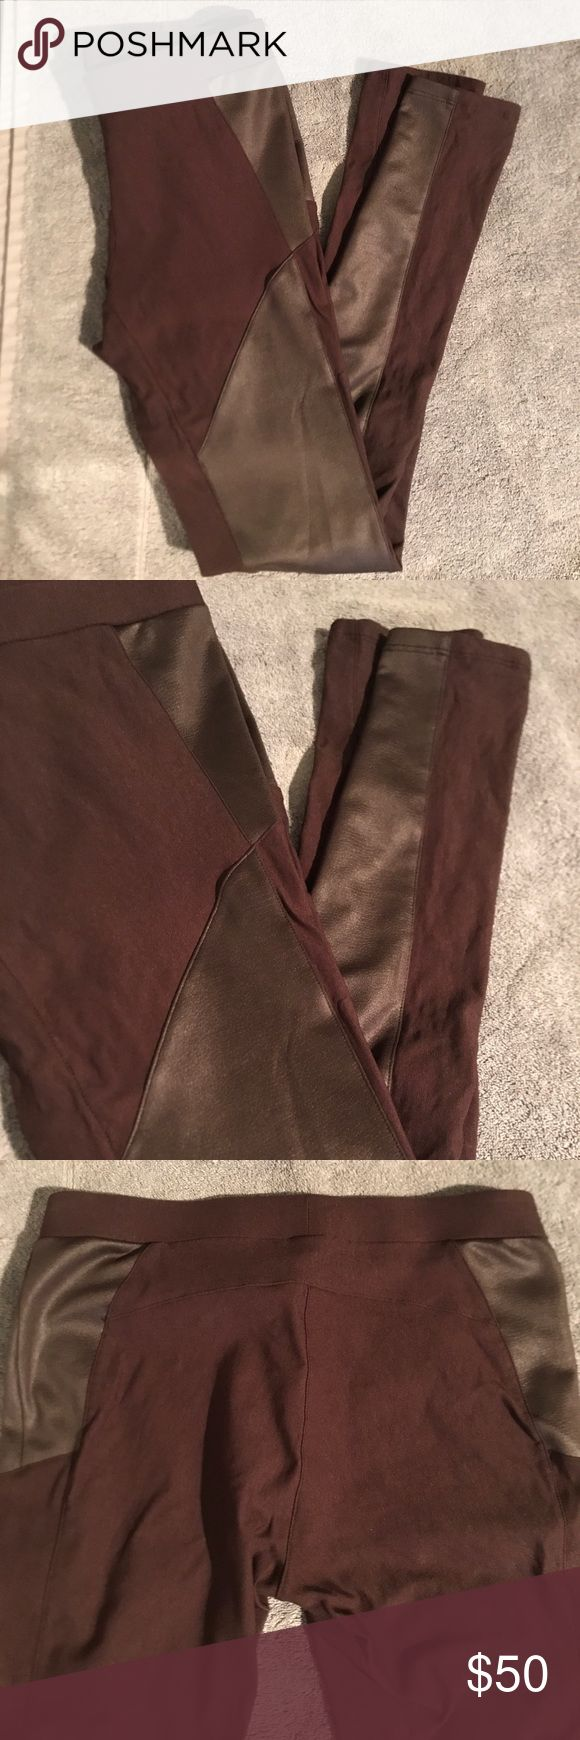 """Leather Panel Leggings Like new condition. Very sturdy leggings with great shape.   Very subtle embossed faux leather paneling down the hip and the front of each leg. Pretty stitching along the butt and a faux zipper cover in front. Stitching down back of legs closer to the outside in the leg. Good amount of stretch!  7.5"""" rise 14"""" across waist 7.5"""" across upper thigh 30"""" inseam  76% rayon 20% nylon 4% spandex Evleo Pants Leggings"""